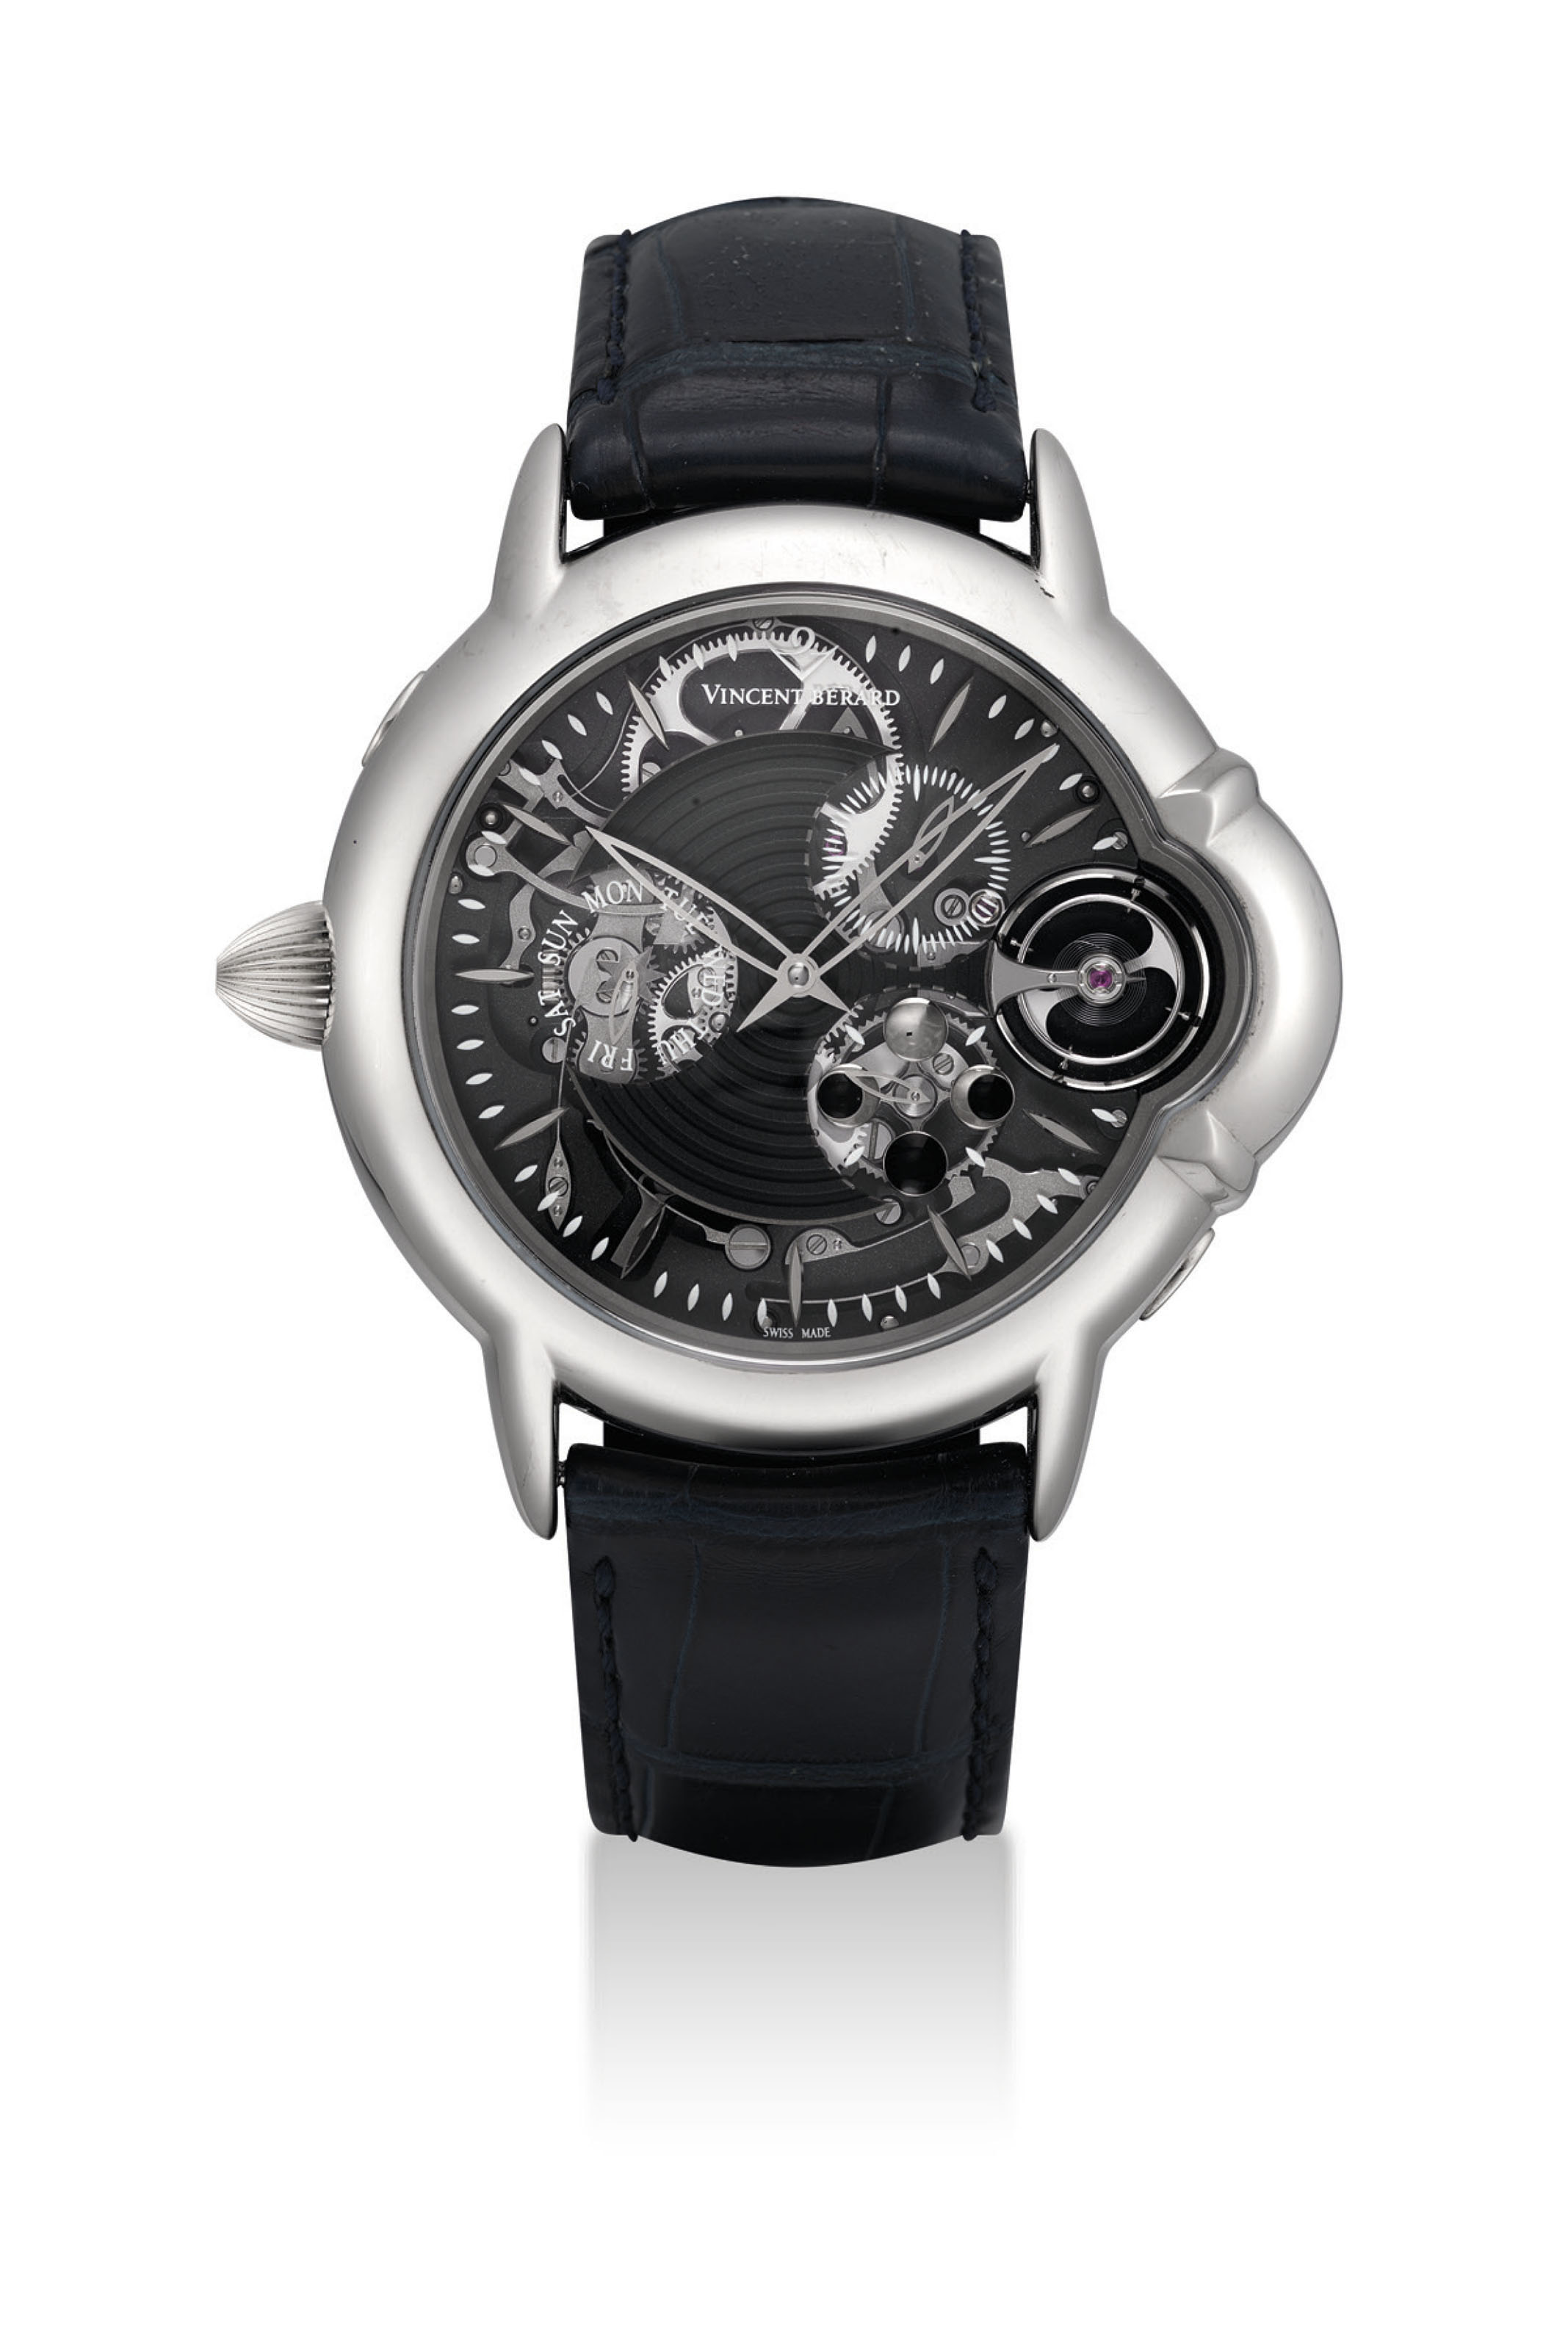 VINCENT BERARD. AN 18K WHITE GOLD LEFTHANDED SEMI-SKELETONISED WRISTWATCH WITH MONTHLY LUNAR CYCLE, POWER RESERVE INDICATION AND DAY